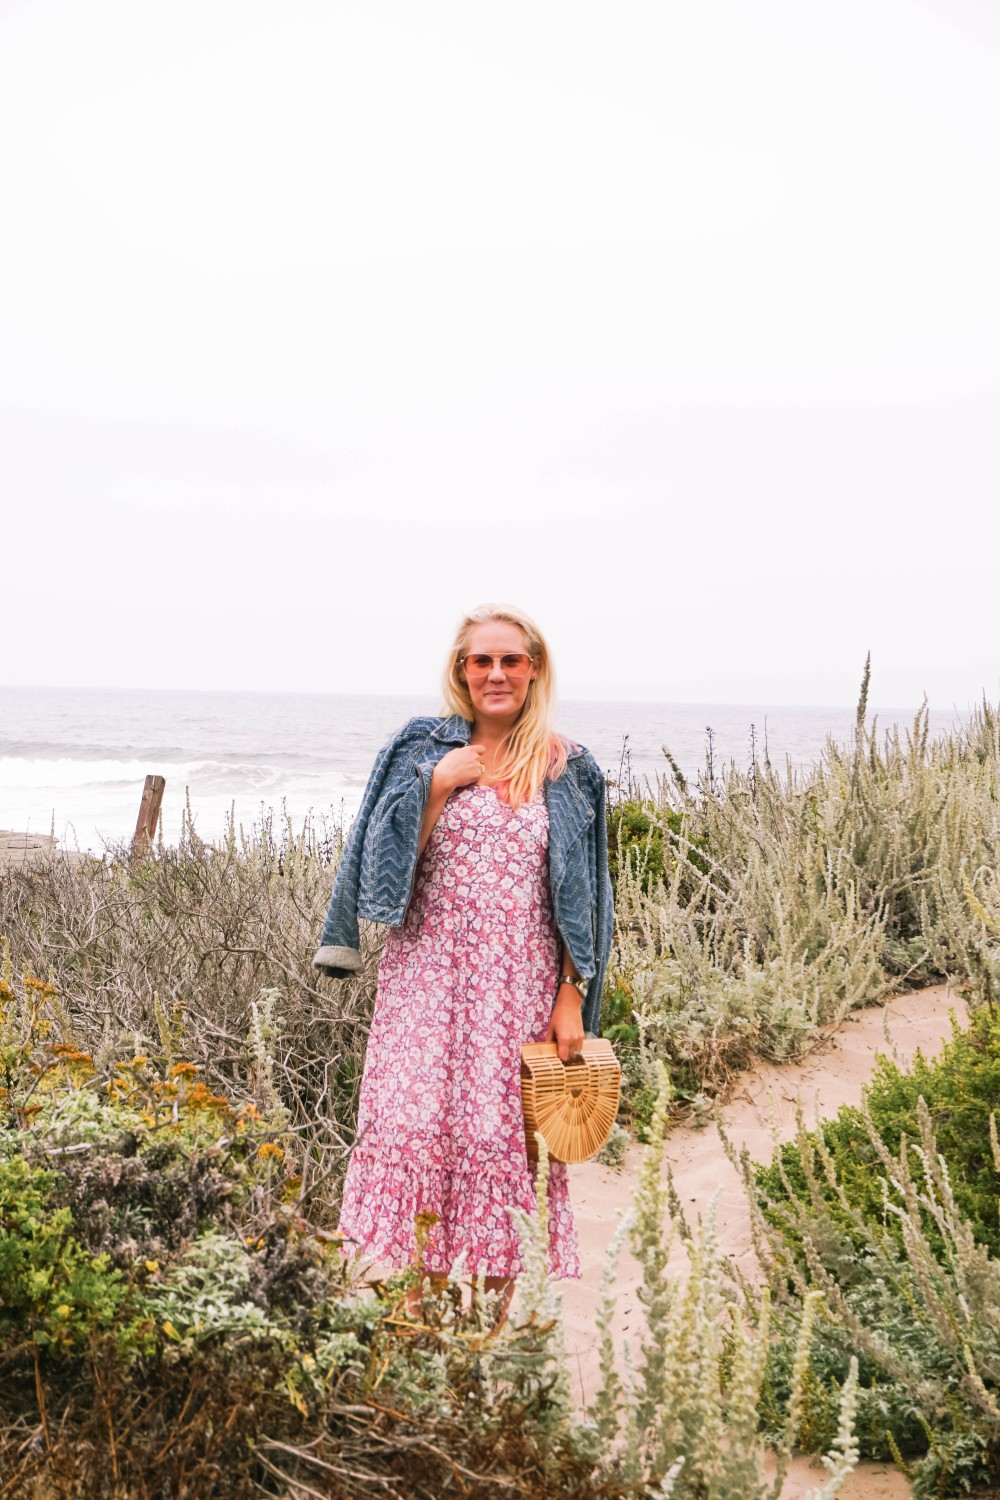 Breezy Beach Dress-Summer Floral Dress-Rebecca Minkoff-Outfit Inspiration-Visit Half Moon Bay-Denim Moto Jacket-Summer Style-Have Need Want 6